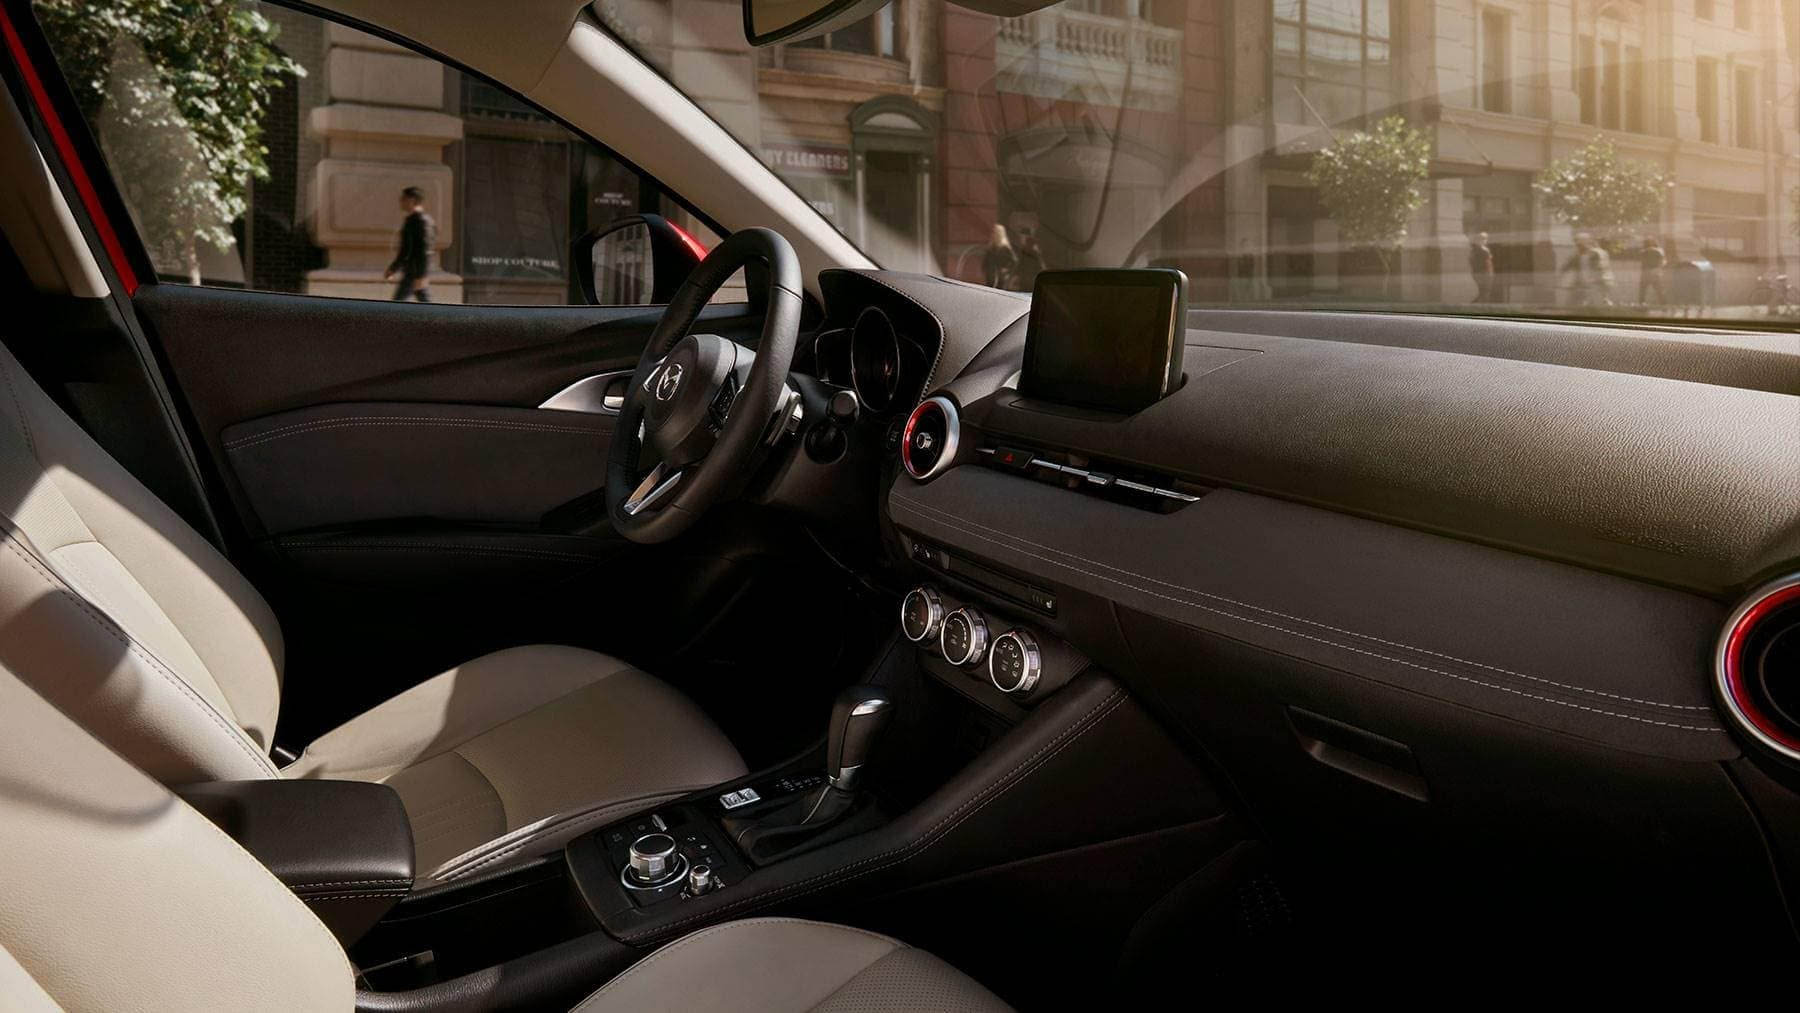 2019 Mazda CX-3 Interior Front Seating and Dashboard